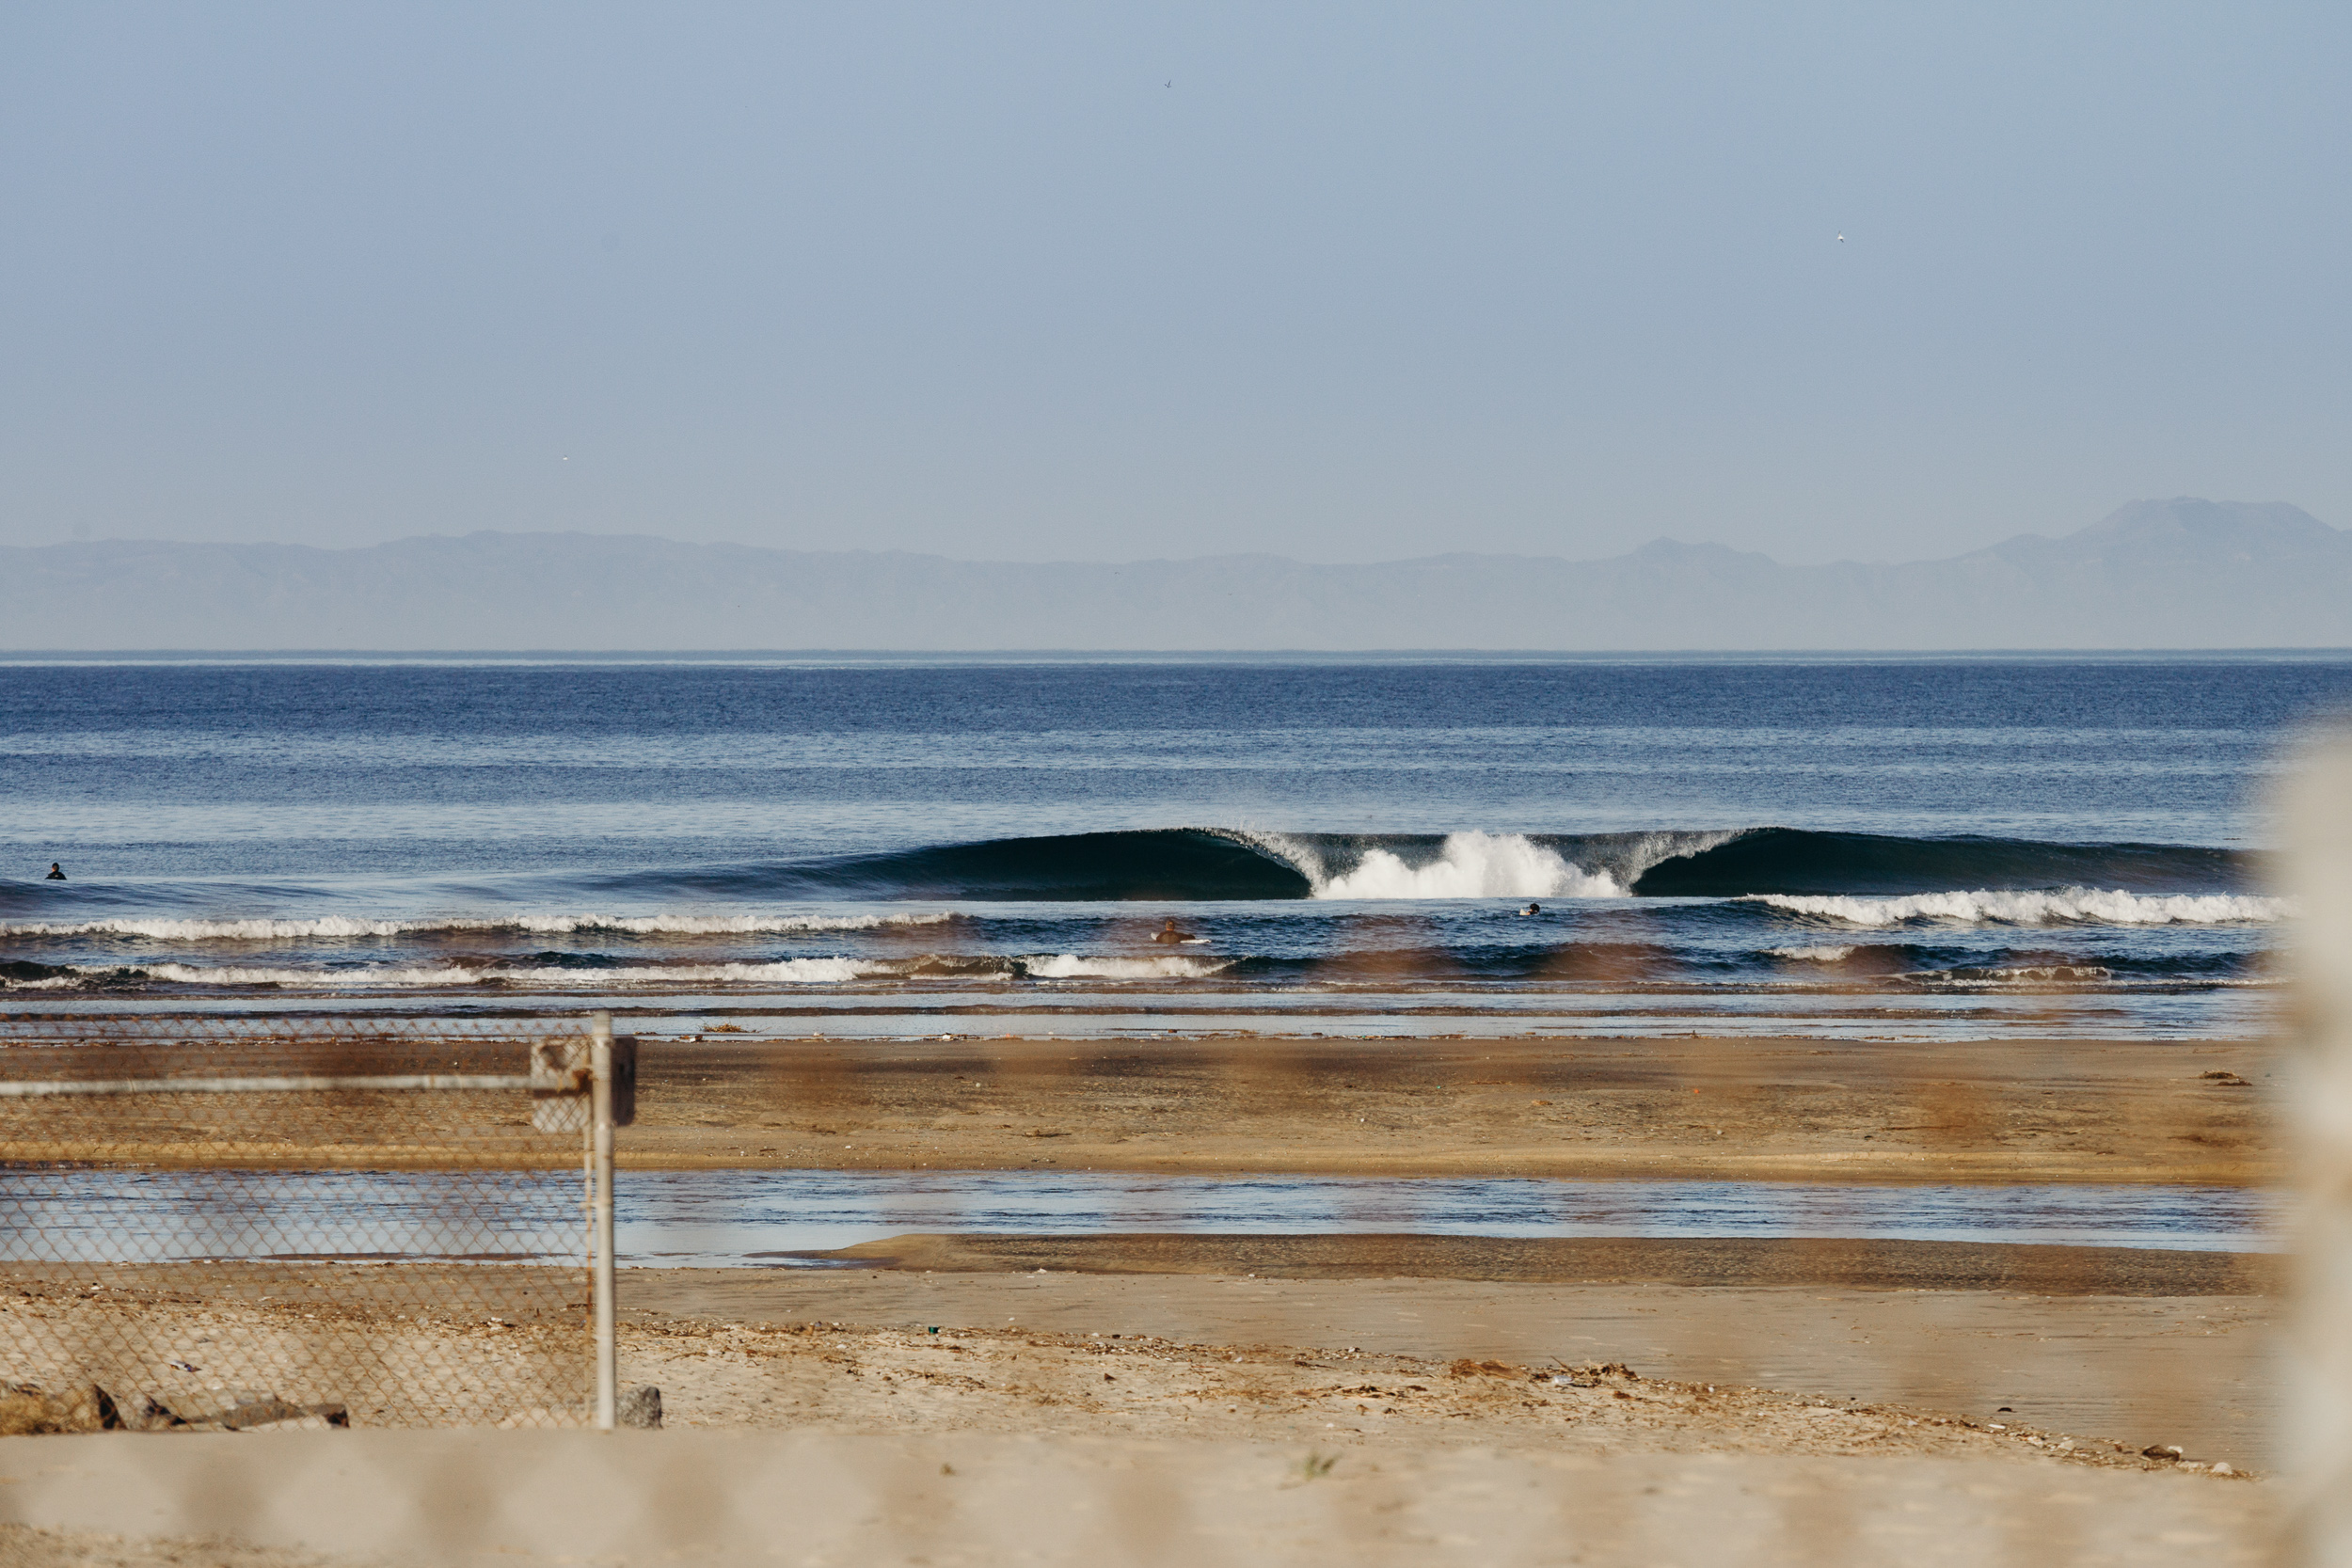 Spot Check Newport Beach River Jetties Surfing Guide With Hd